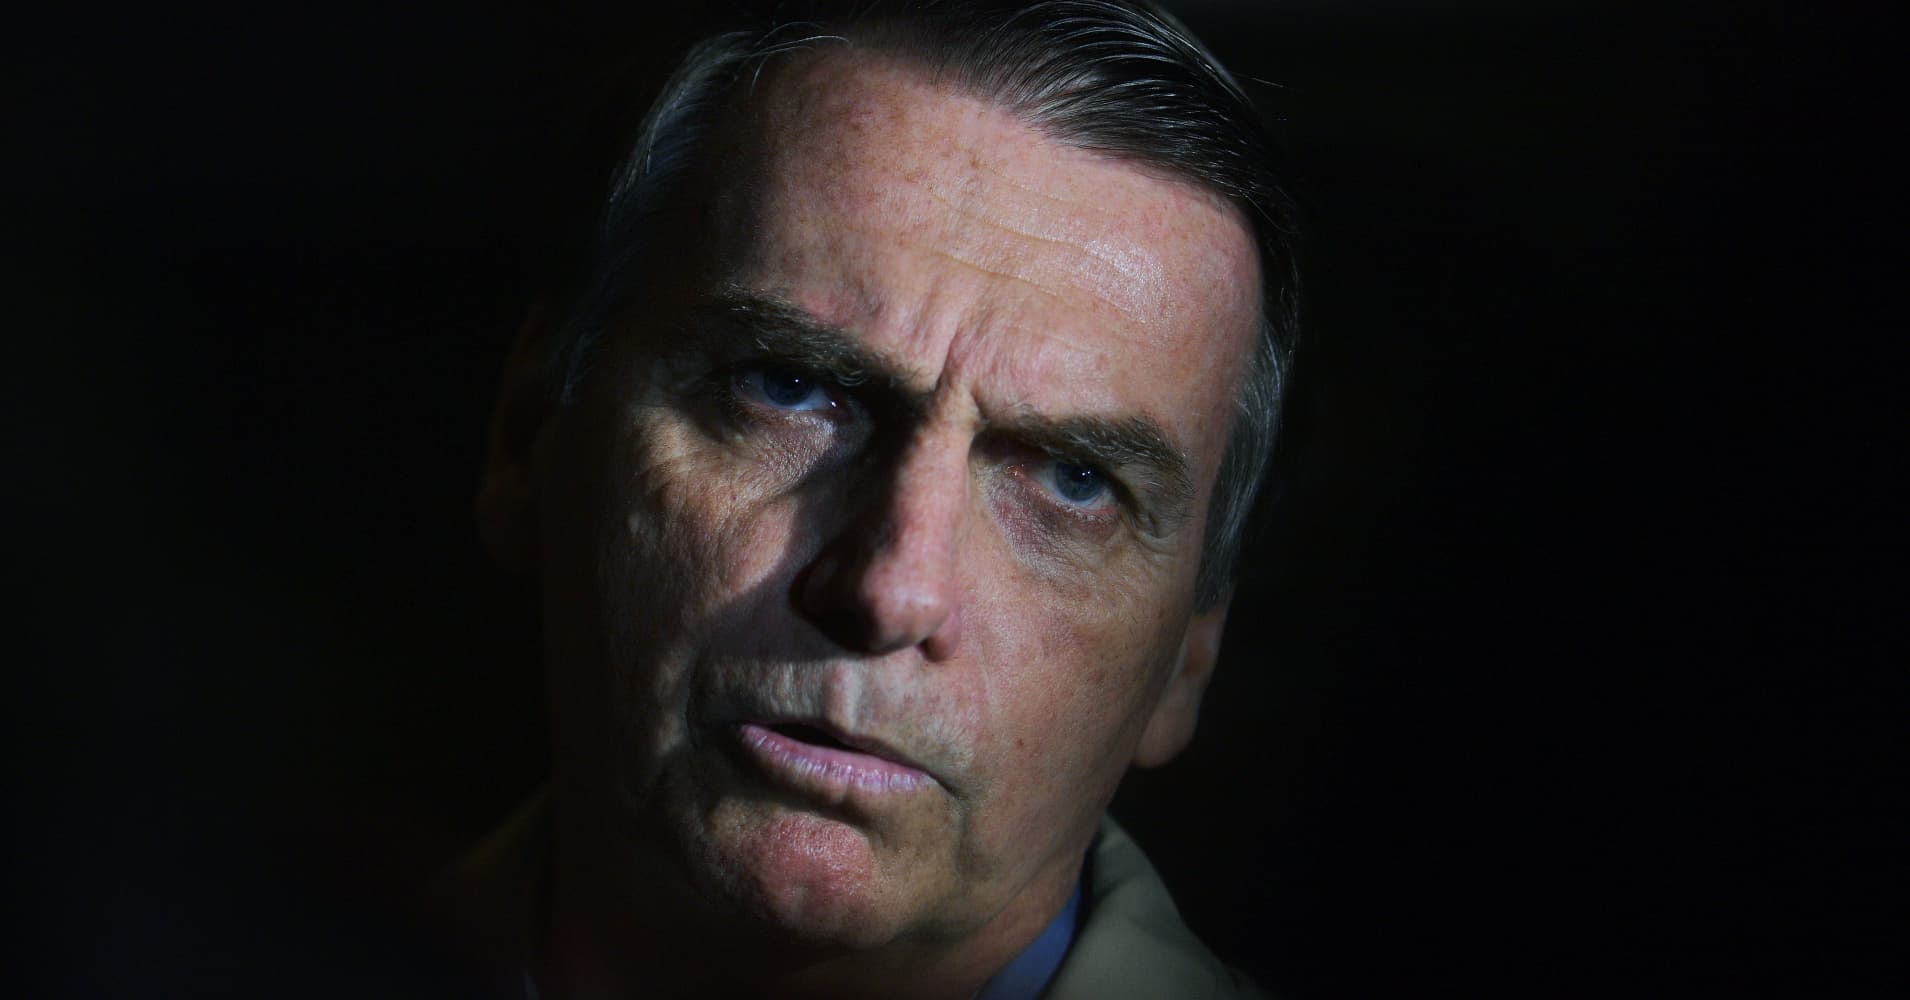 Brazil Election Jair Bolsonaro S Most Controversial Quotes